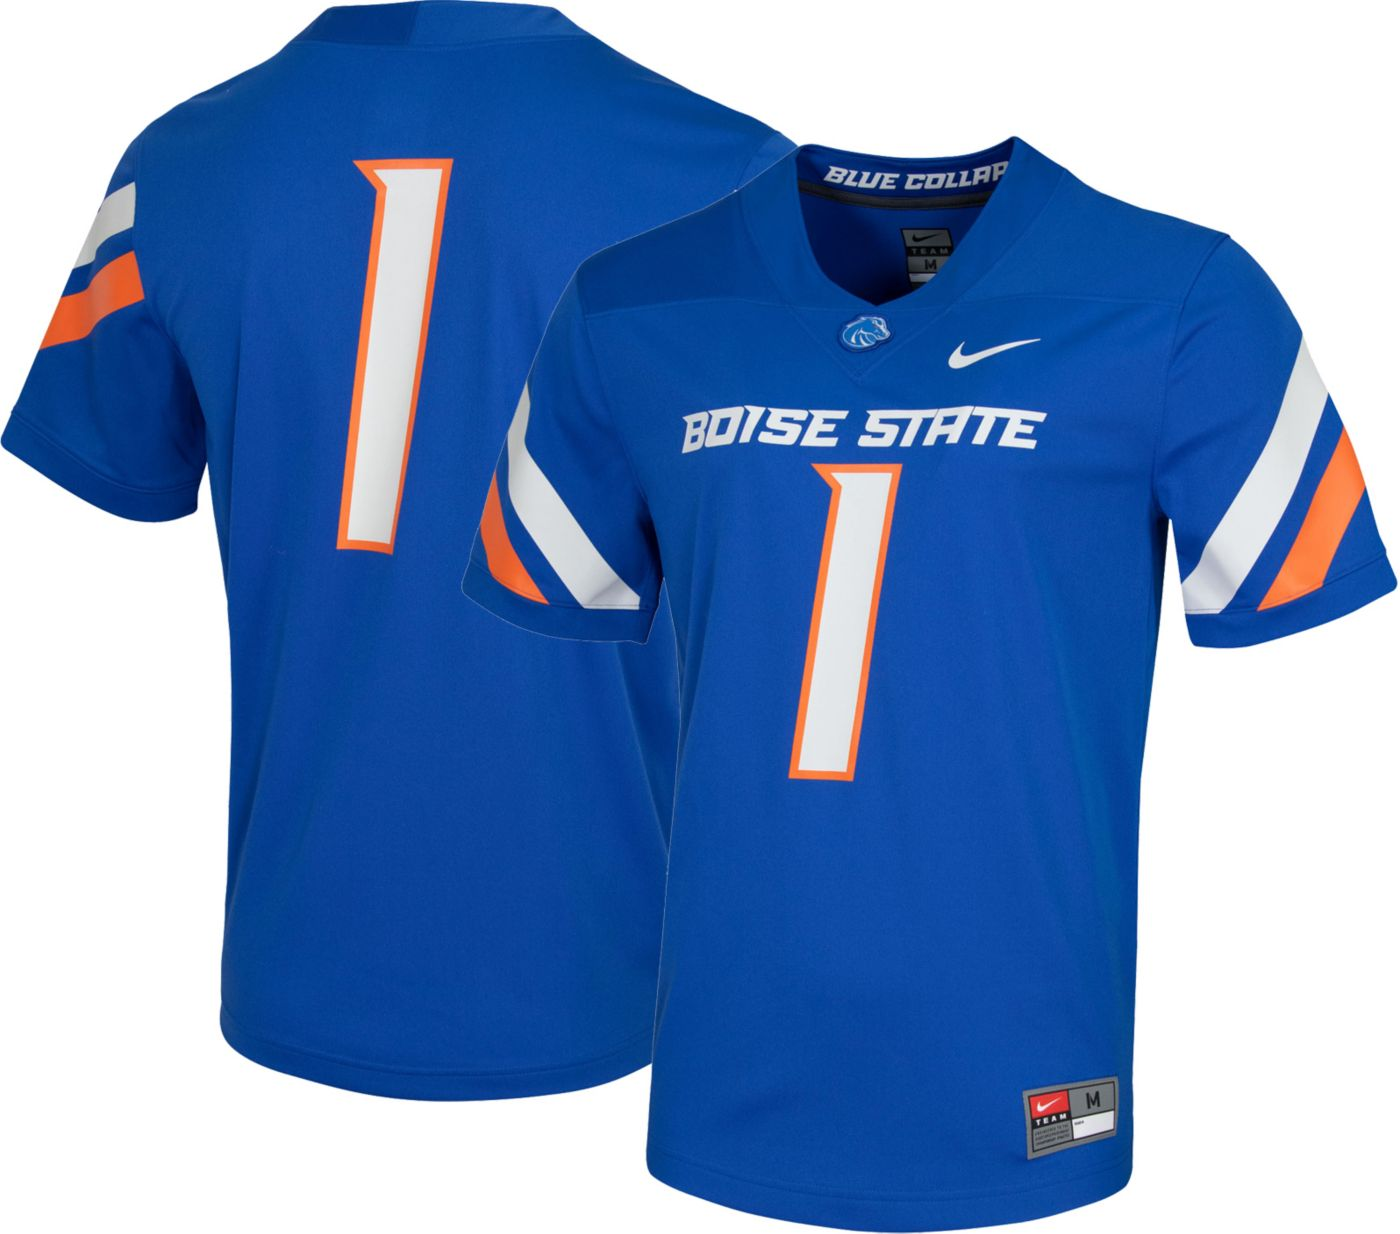 Nike Men's Boise State Broncos #1 Blue Dri-FIT Game Football Jersey